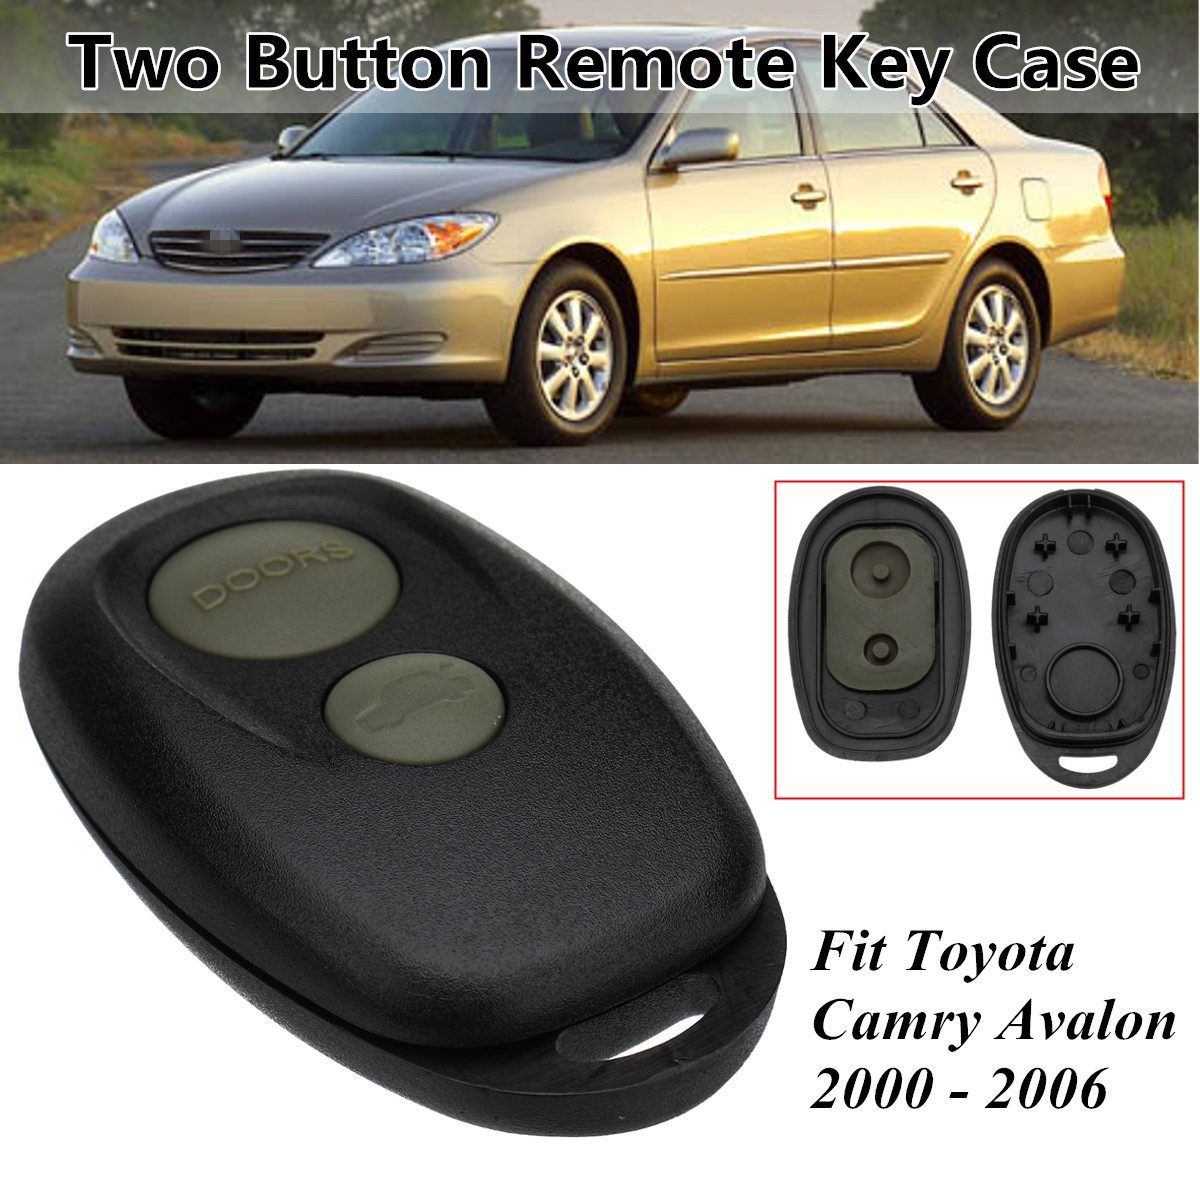 Battery For 2006 Toyota Camry: 2 Button Car Remote Key Case Control Case Shell For Toyota